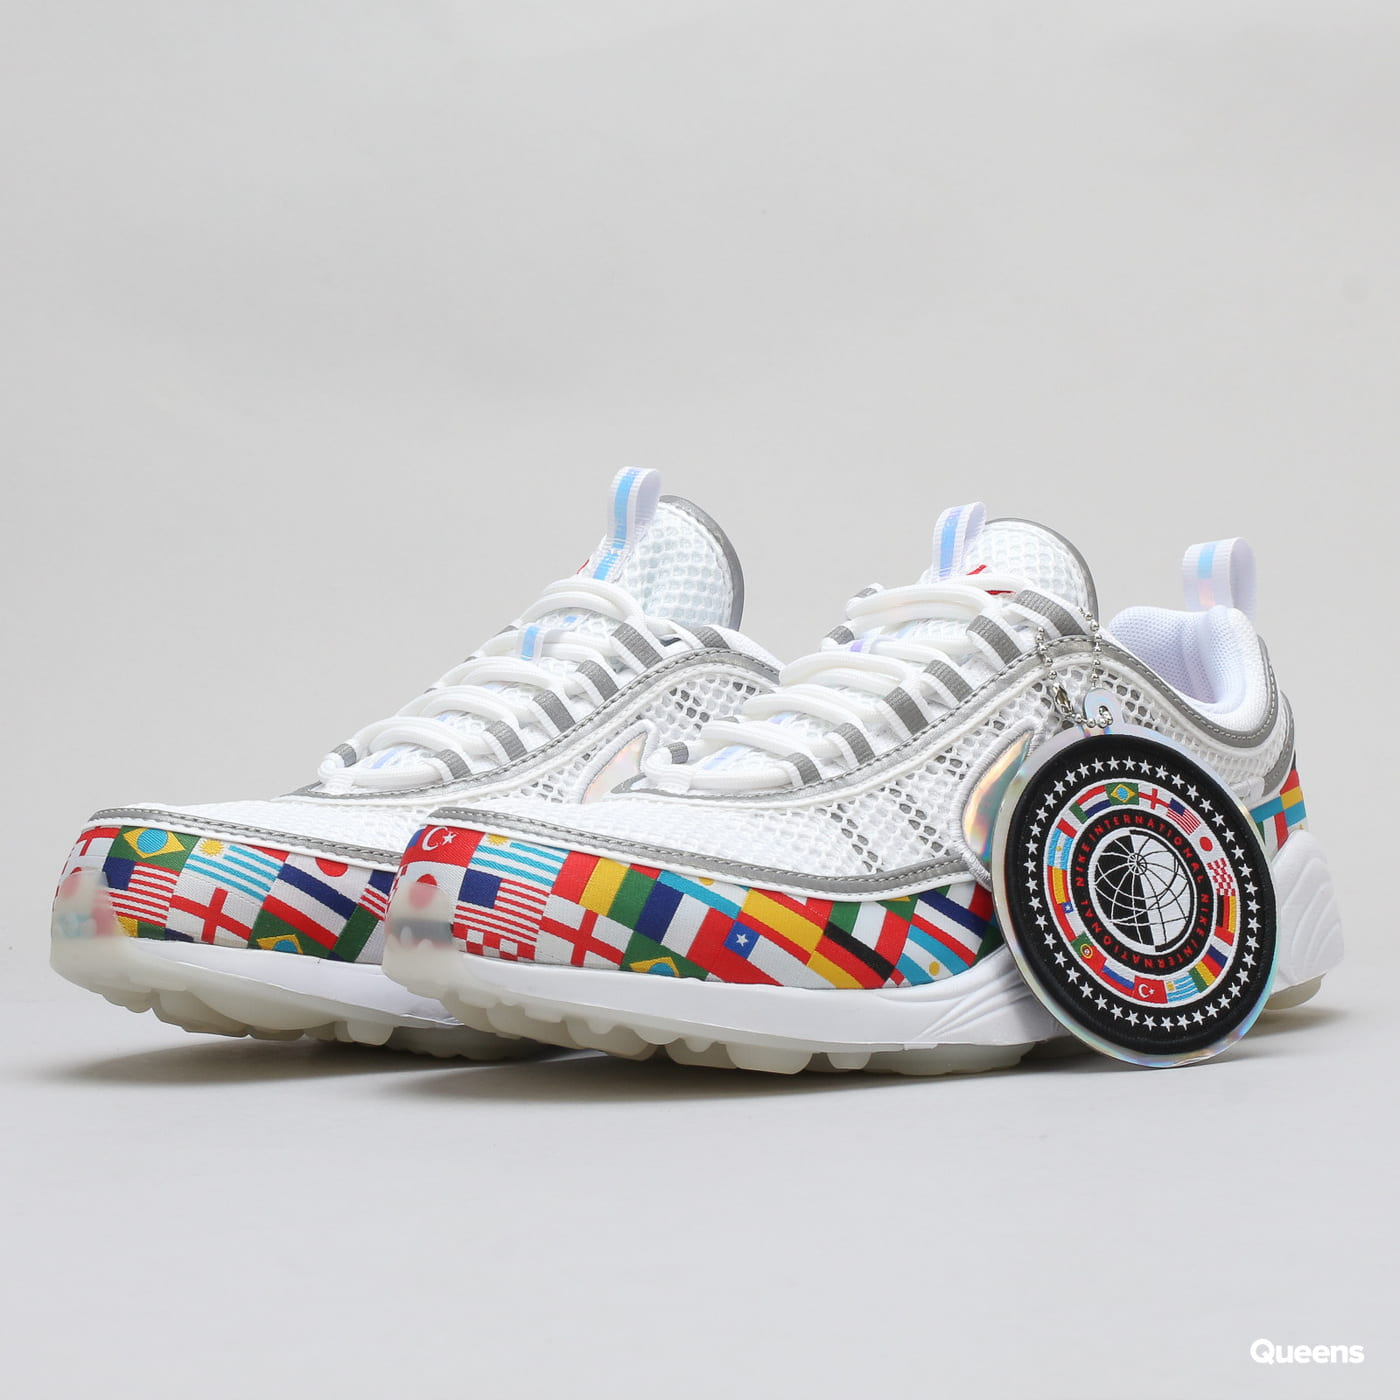 f0a06a1a09662 Sneakers Nike Air Zoom Spiridon  16 Nic QS (AO5121-100)– Queens 💚